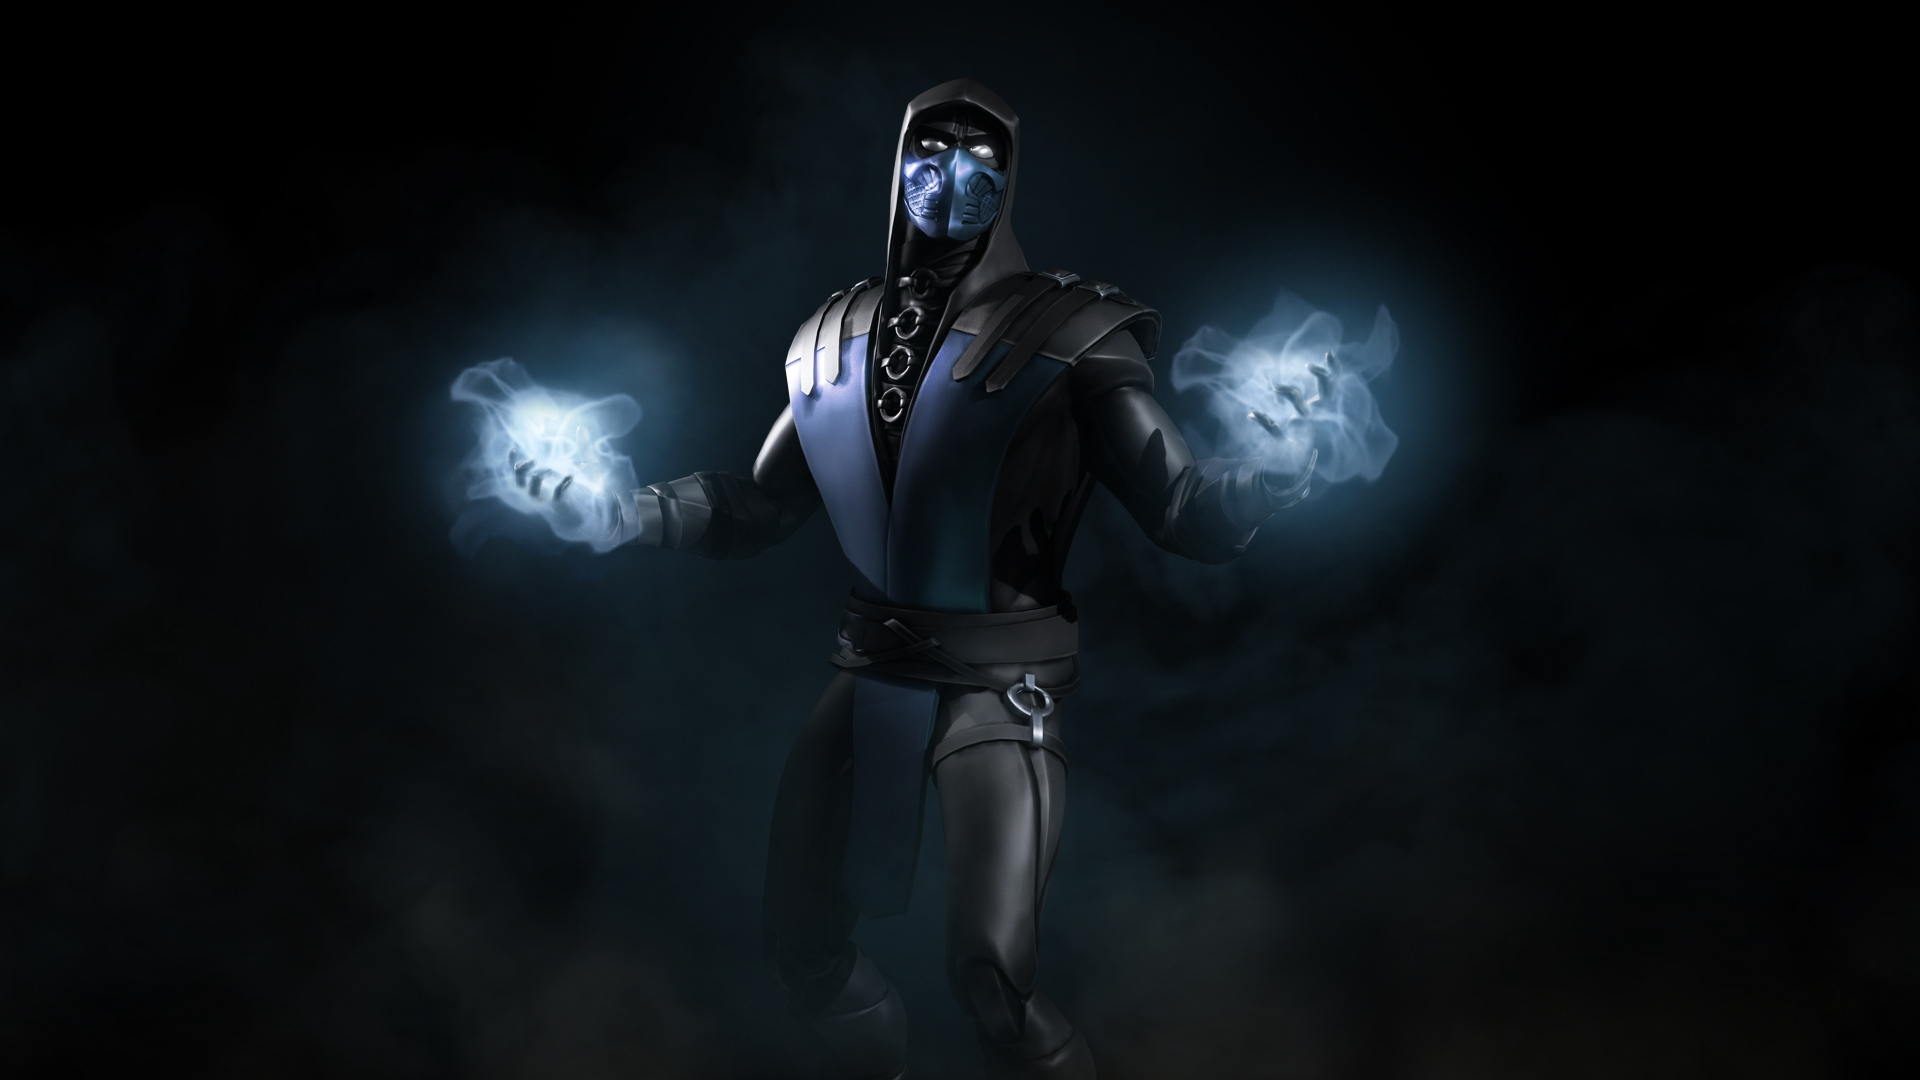 Mortal Kombat X Blue Steel Sub Zero Hd Wallpaper